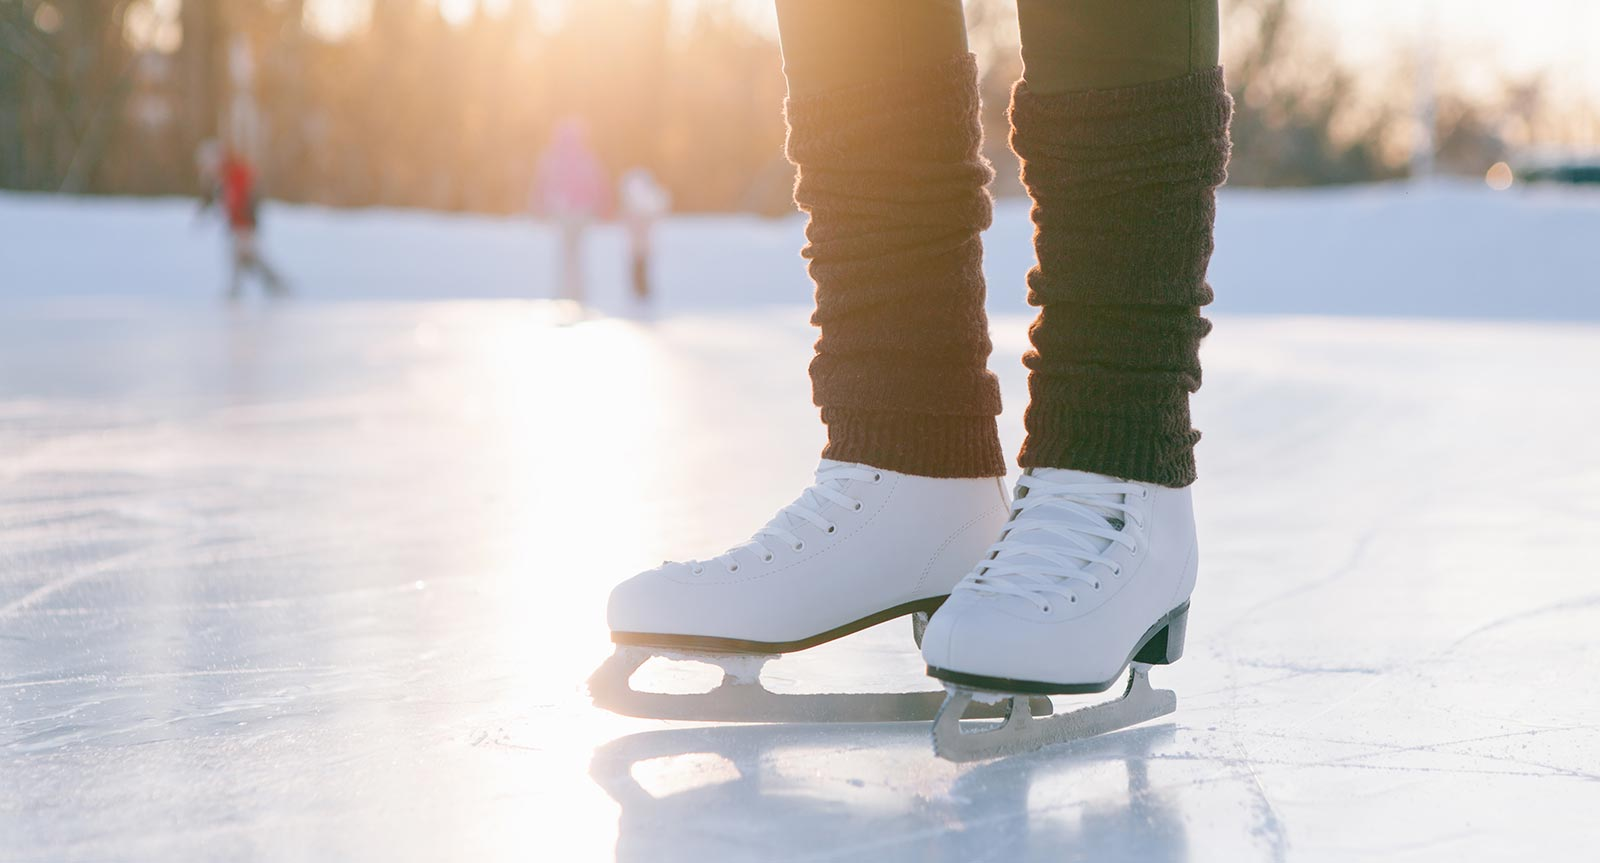 Close-up of a woman's skates on the ice